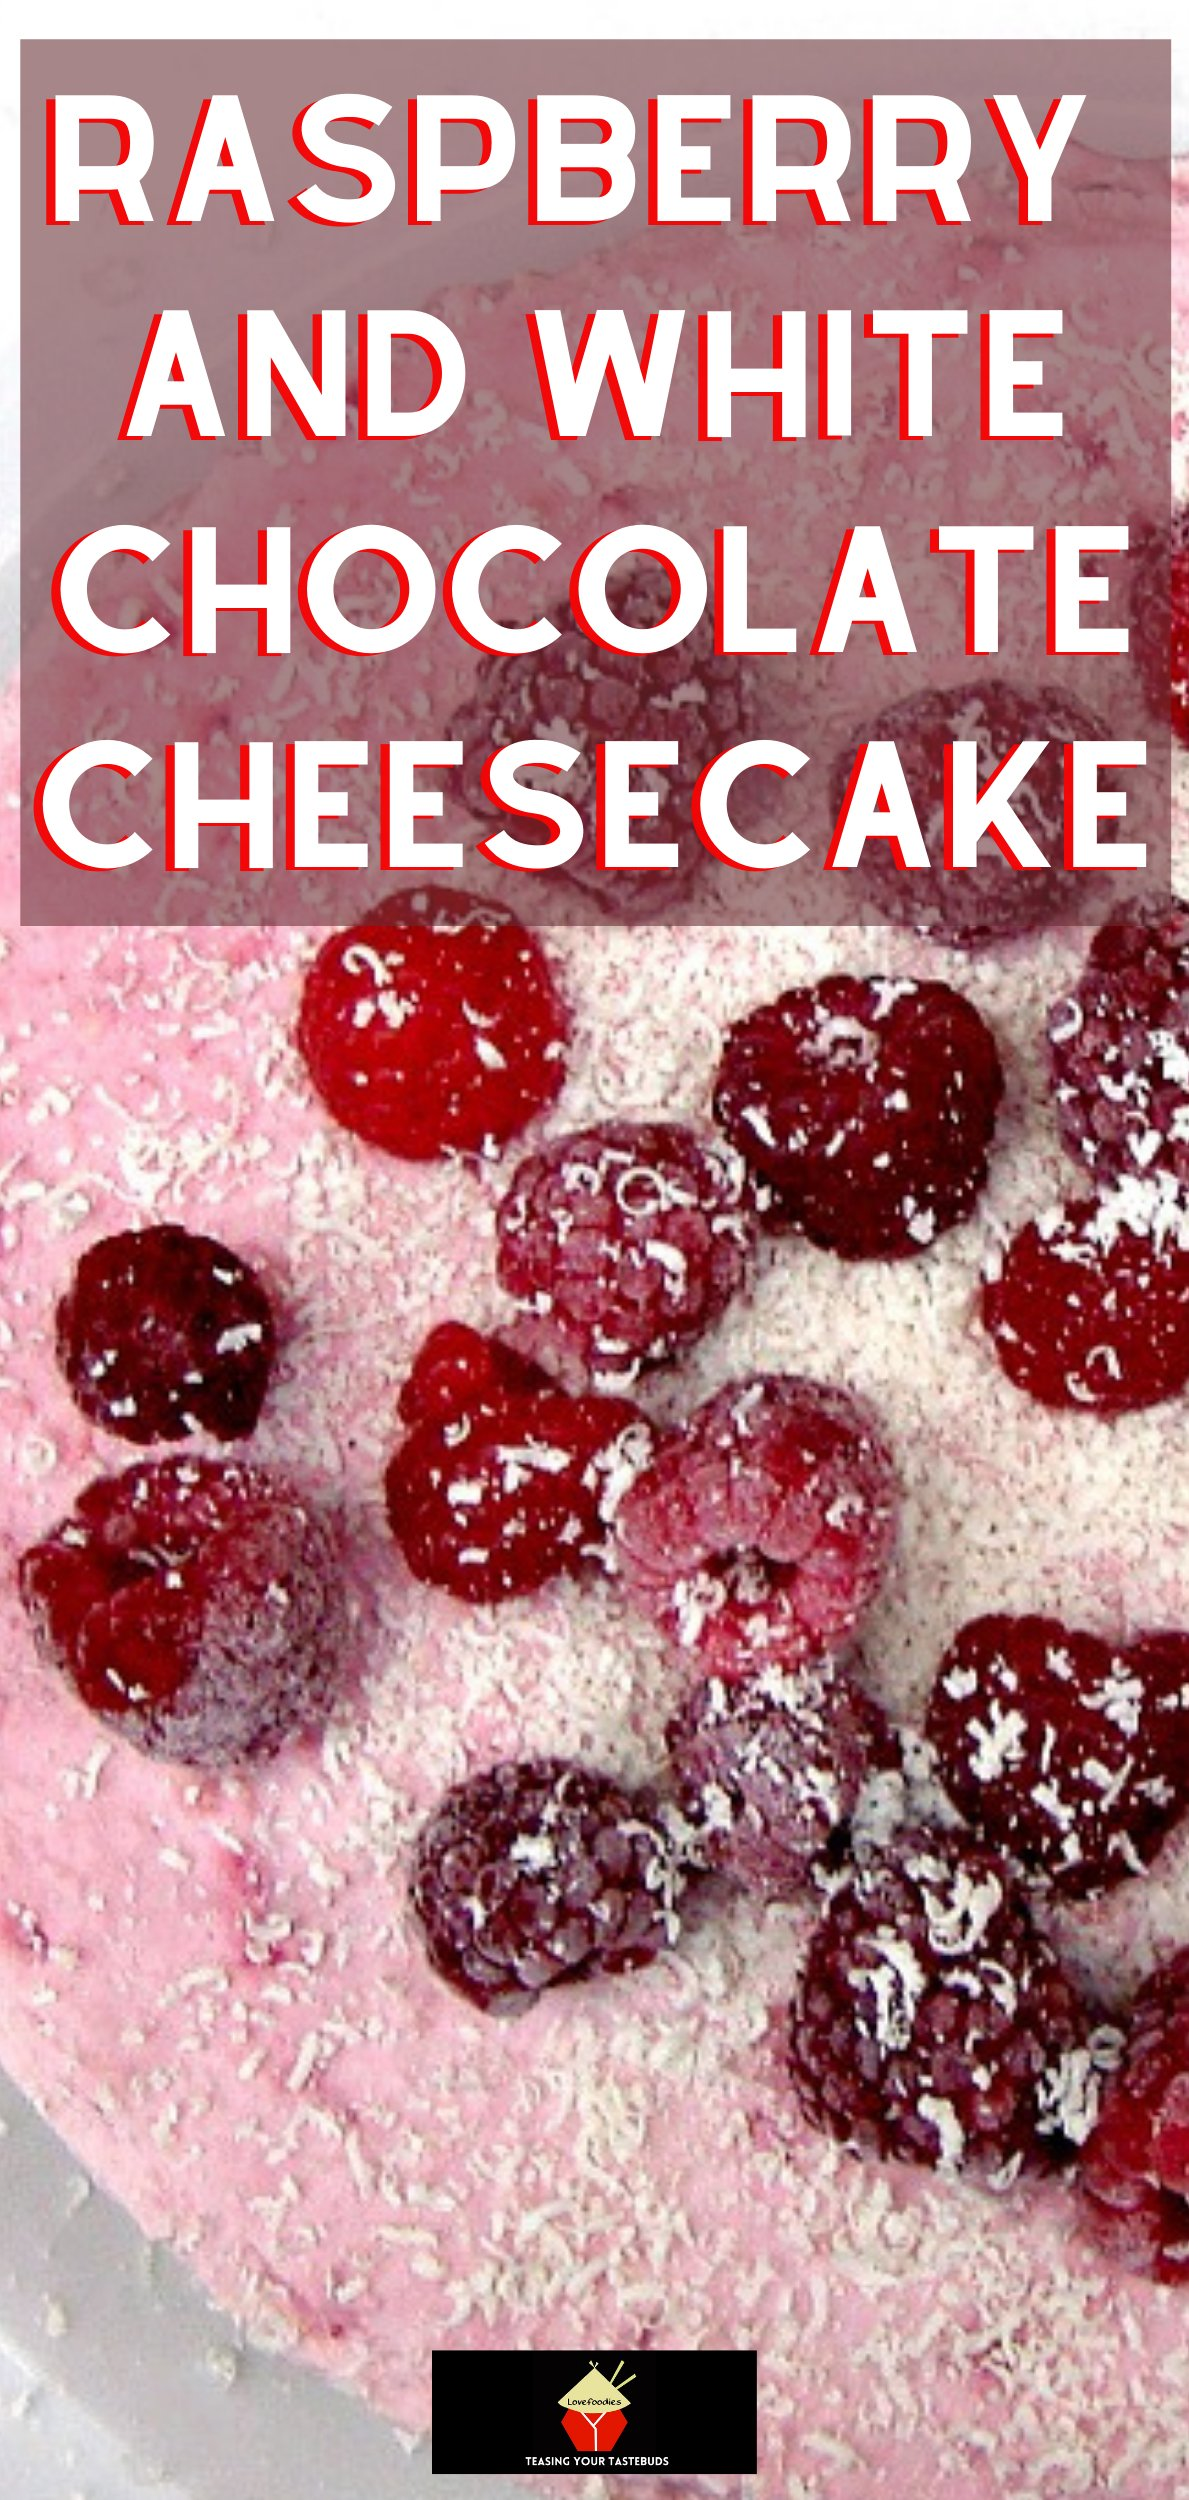 Raspberry and White Chocolate Cheesecake, a refreshing creamy No-Bake dessert laced with raspberries & white chocolate. Serve Semi Frozen or chilled